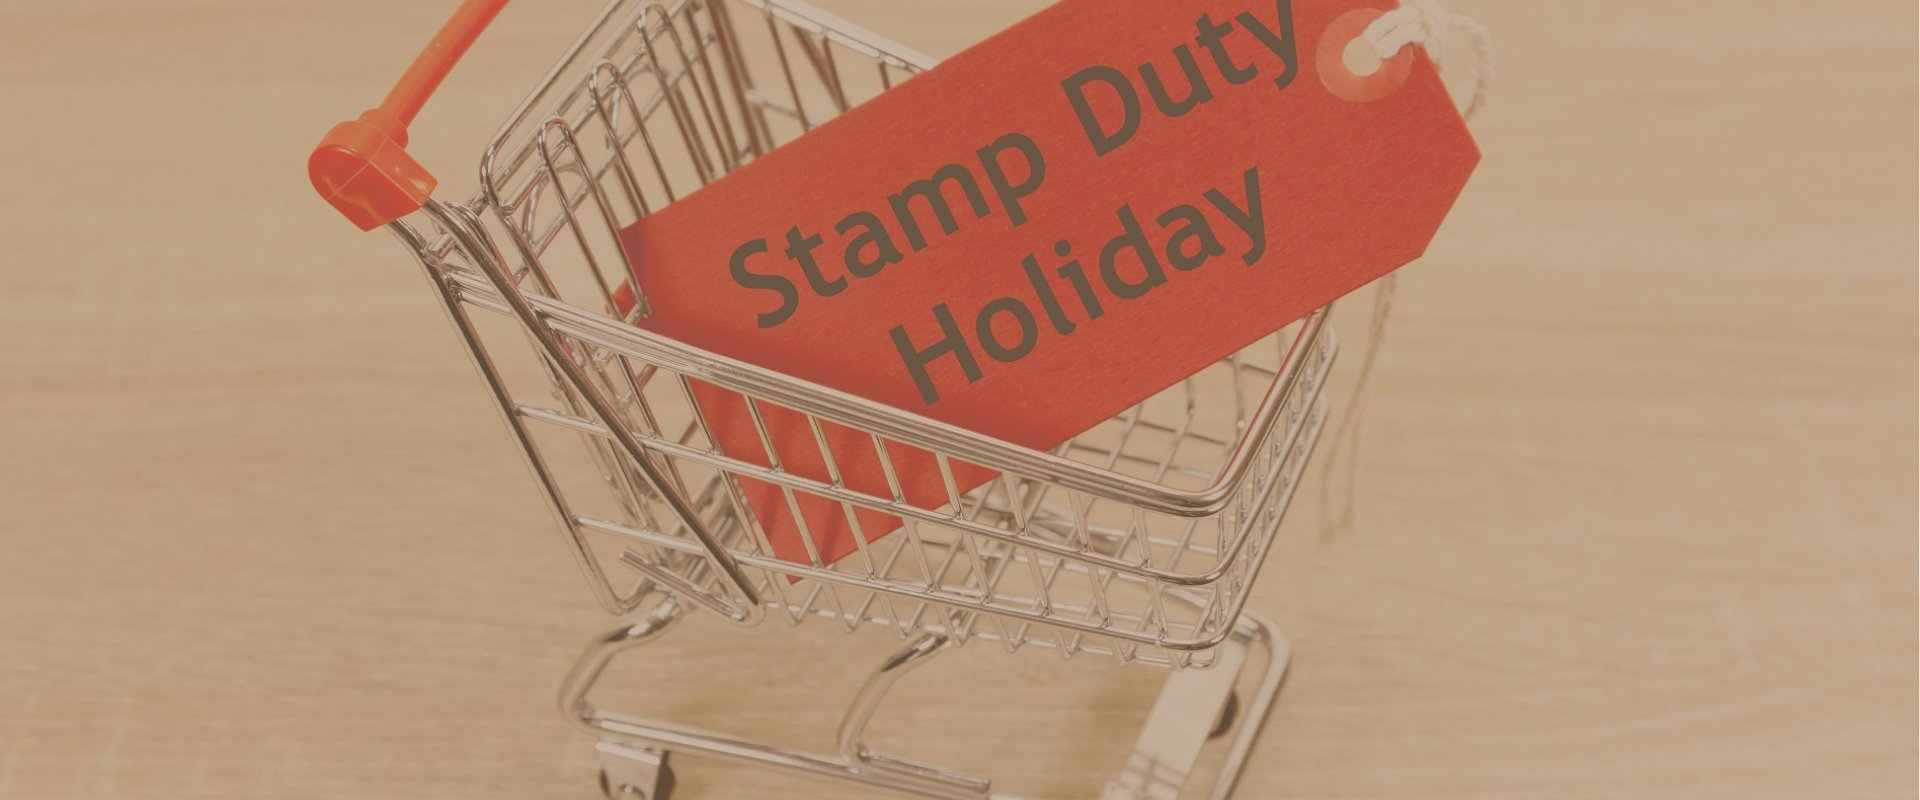 Stamp duty holiday guide